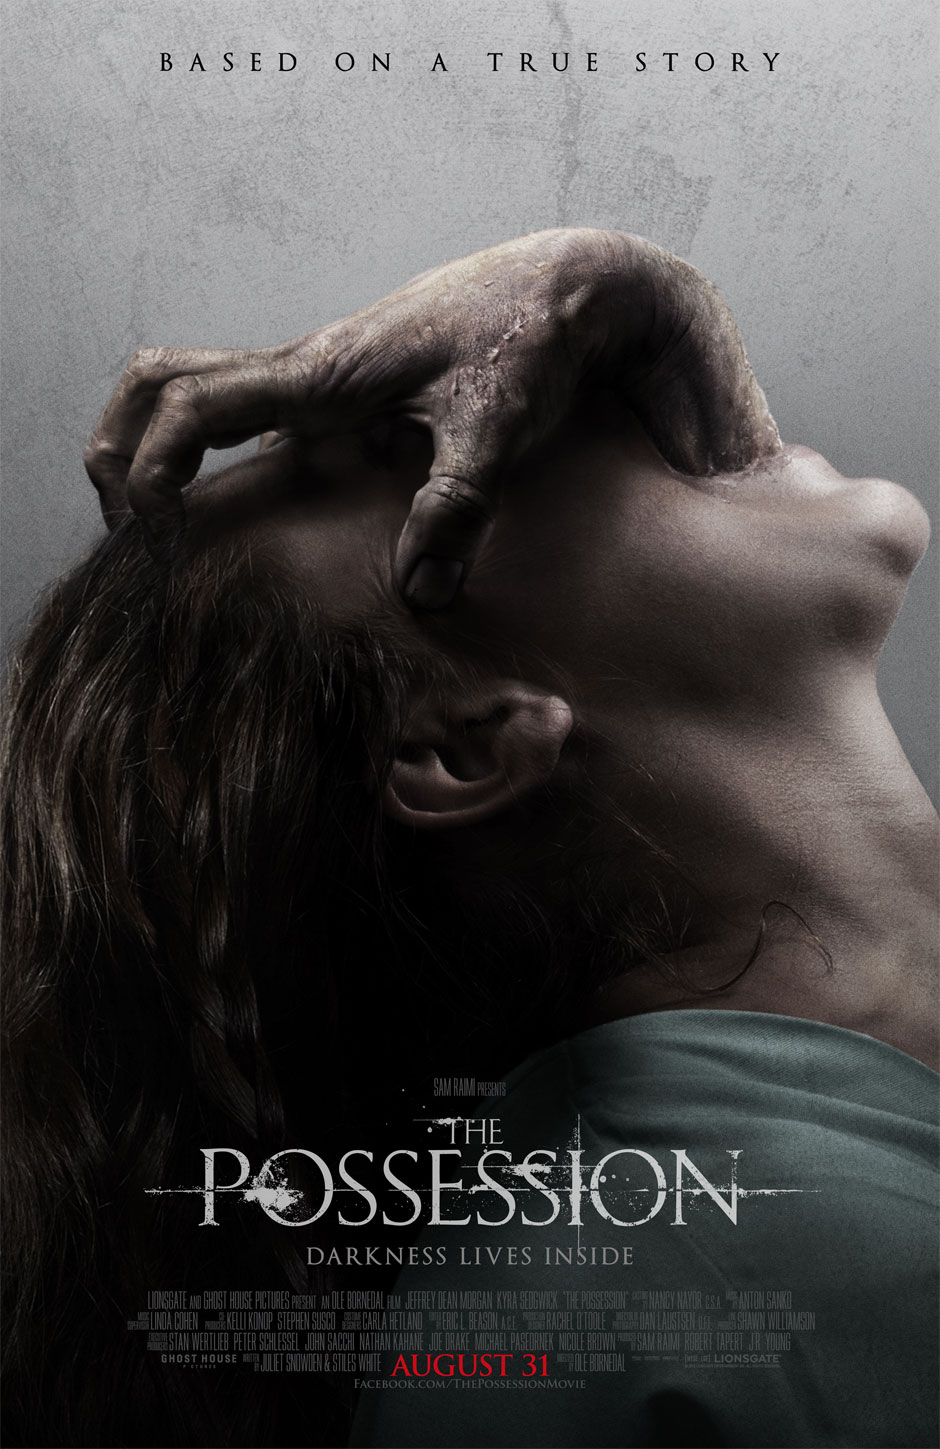 The Possession 2012 movie